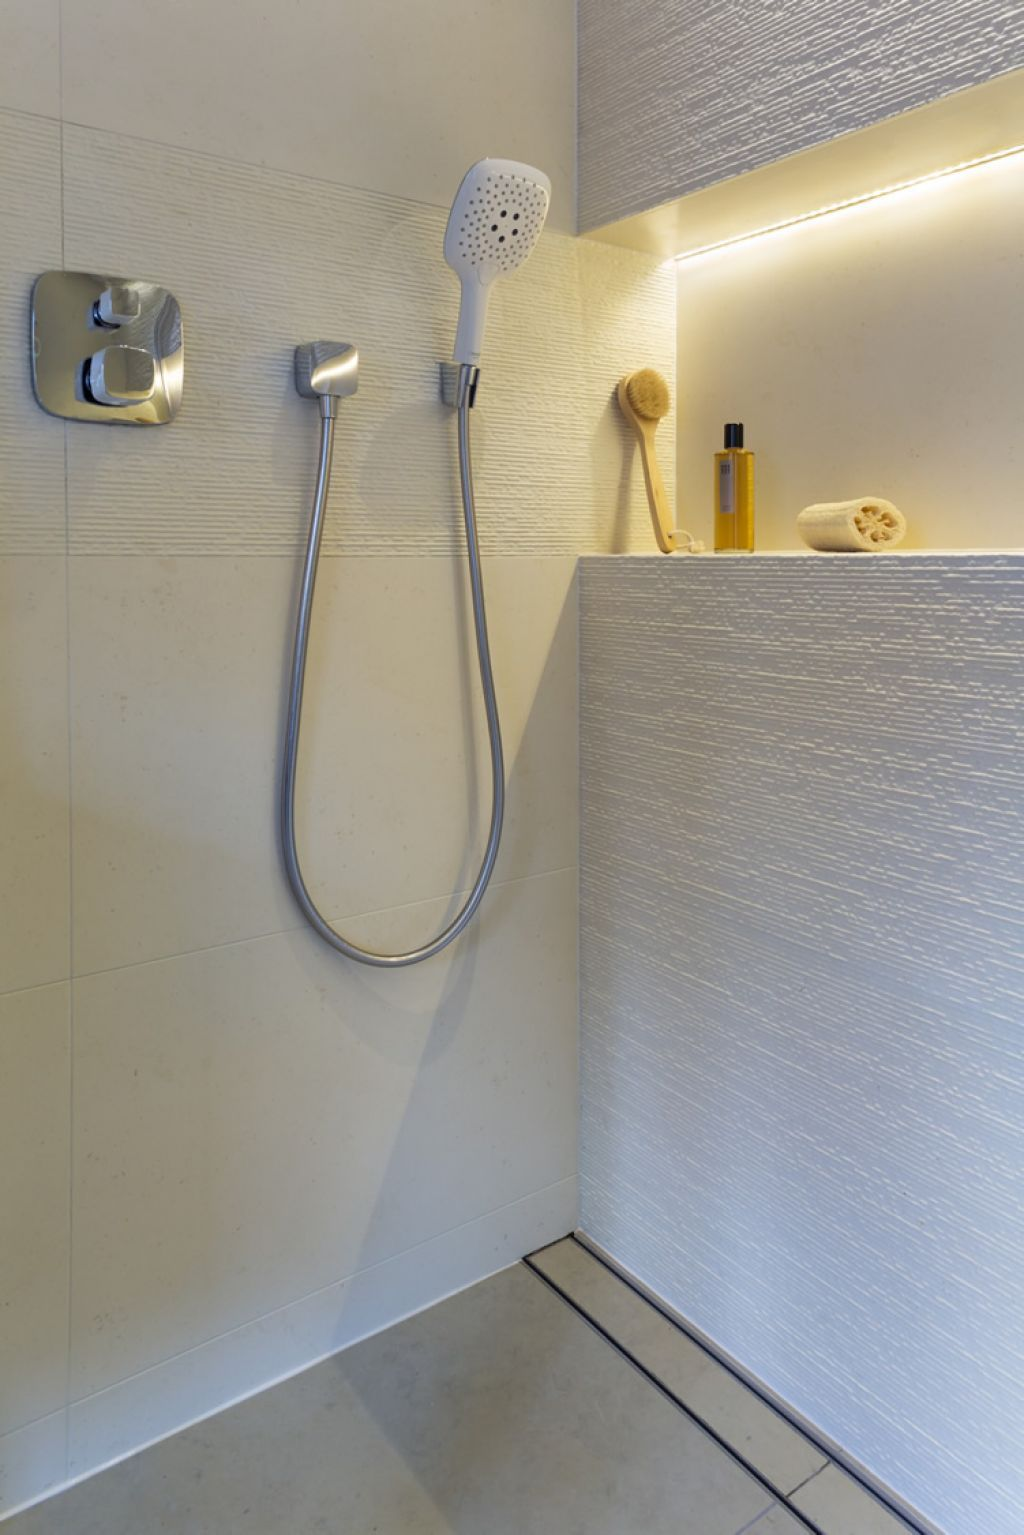 Bathroom Shower Lighting Ideas Part - 41: LED Shower Lighting In The Bathroom